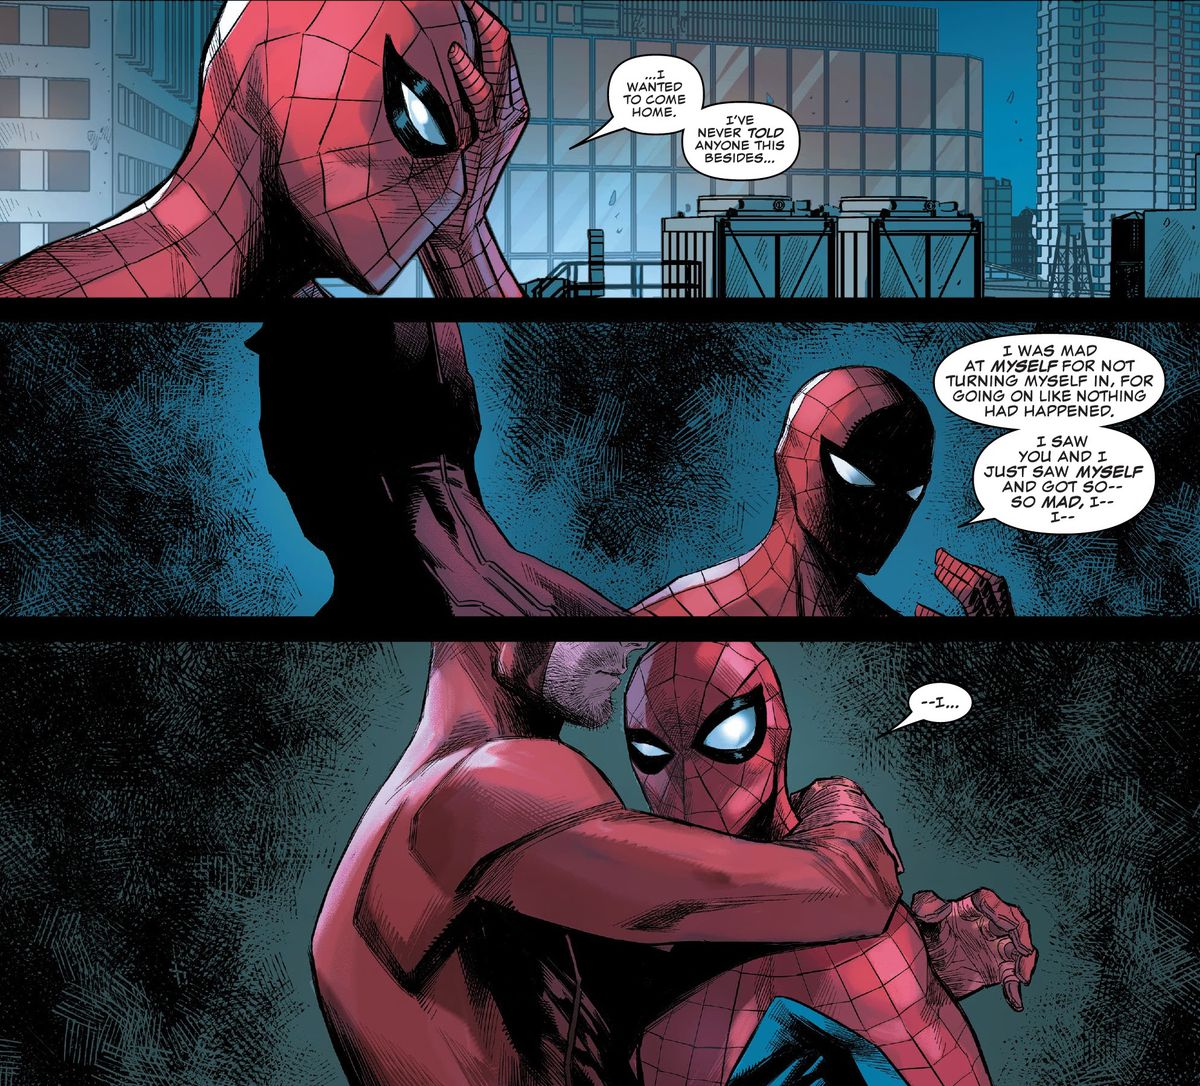 """""""I was mad at myself for not turning myself in. For going on like nothing had happened. I saw you and I just saw myself and got so —so mad, I — I —"""" Spider-Man tells Daredevil in Daredevil #23, Marvel Comics (2020). Daredevil hugs him."""